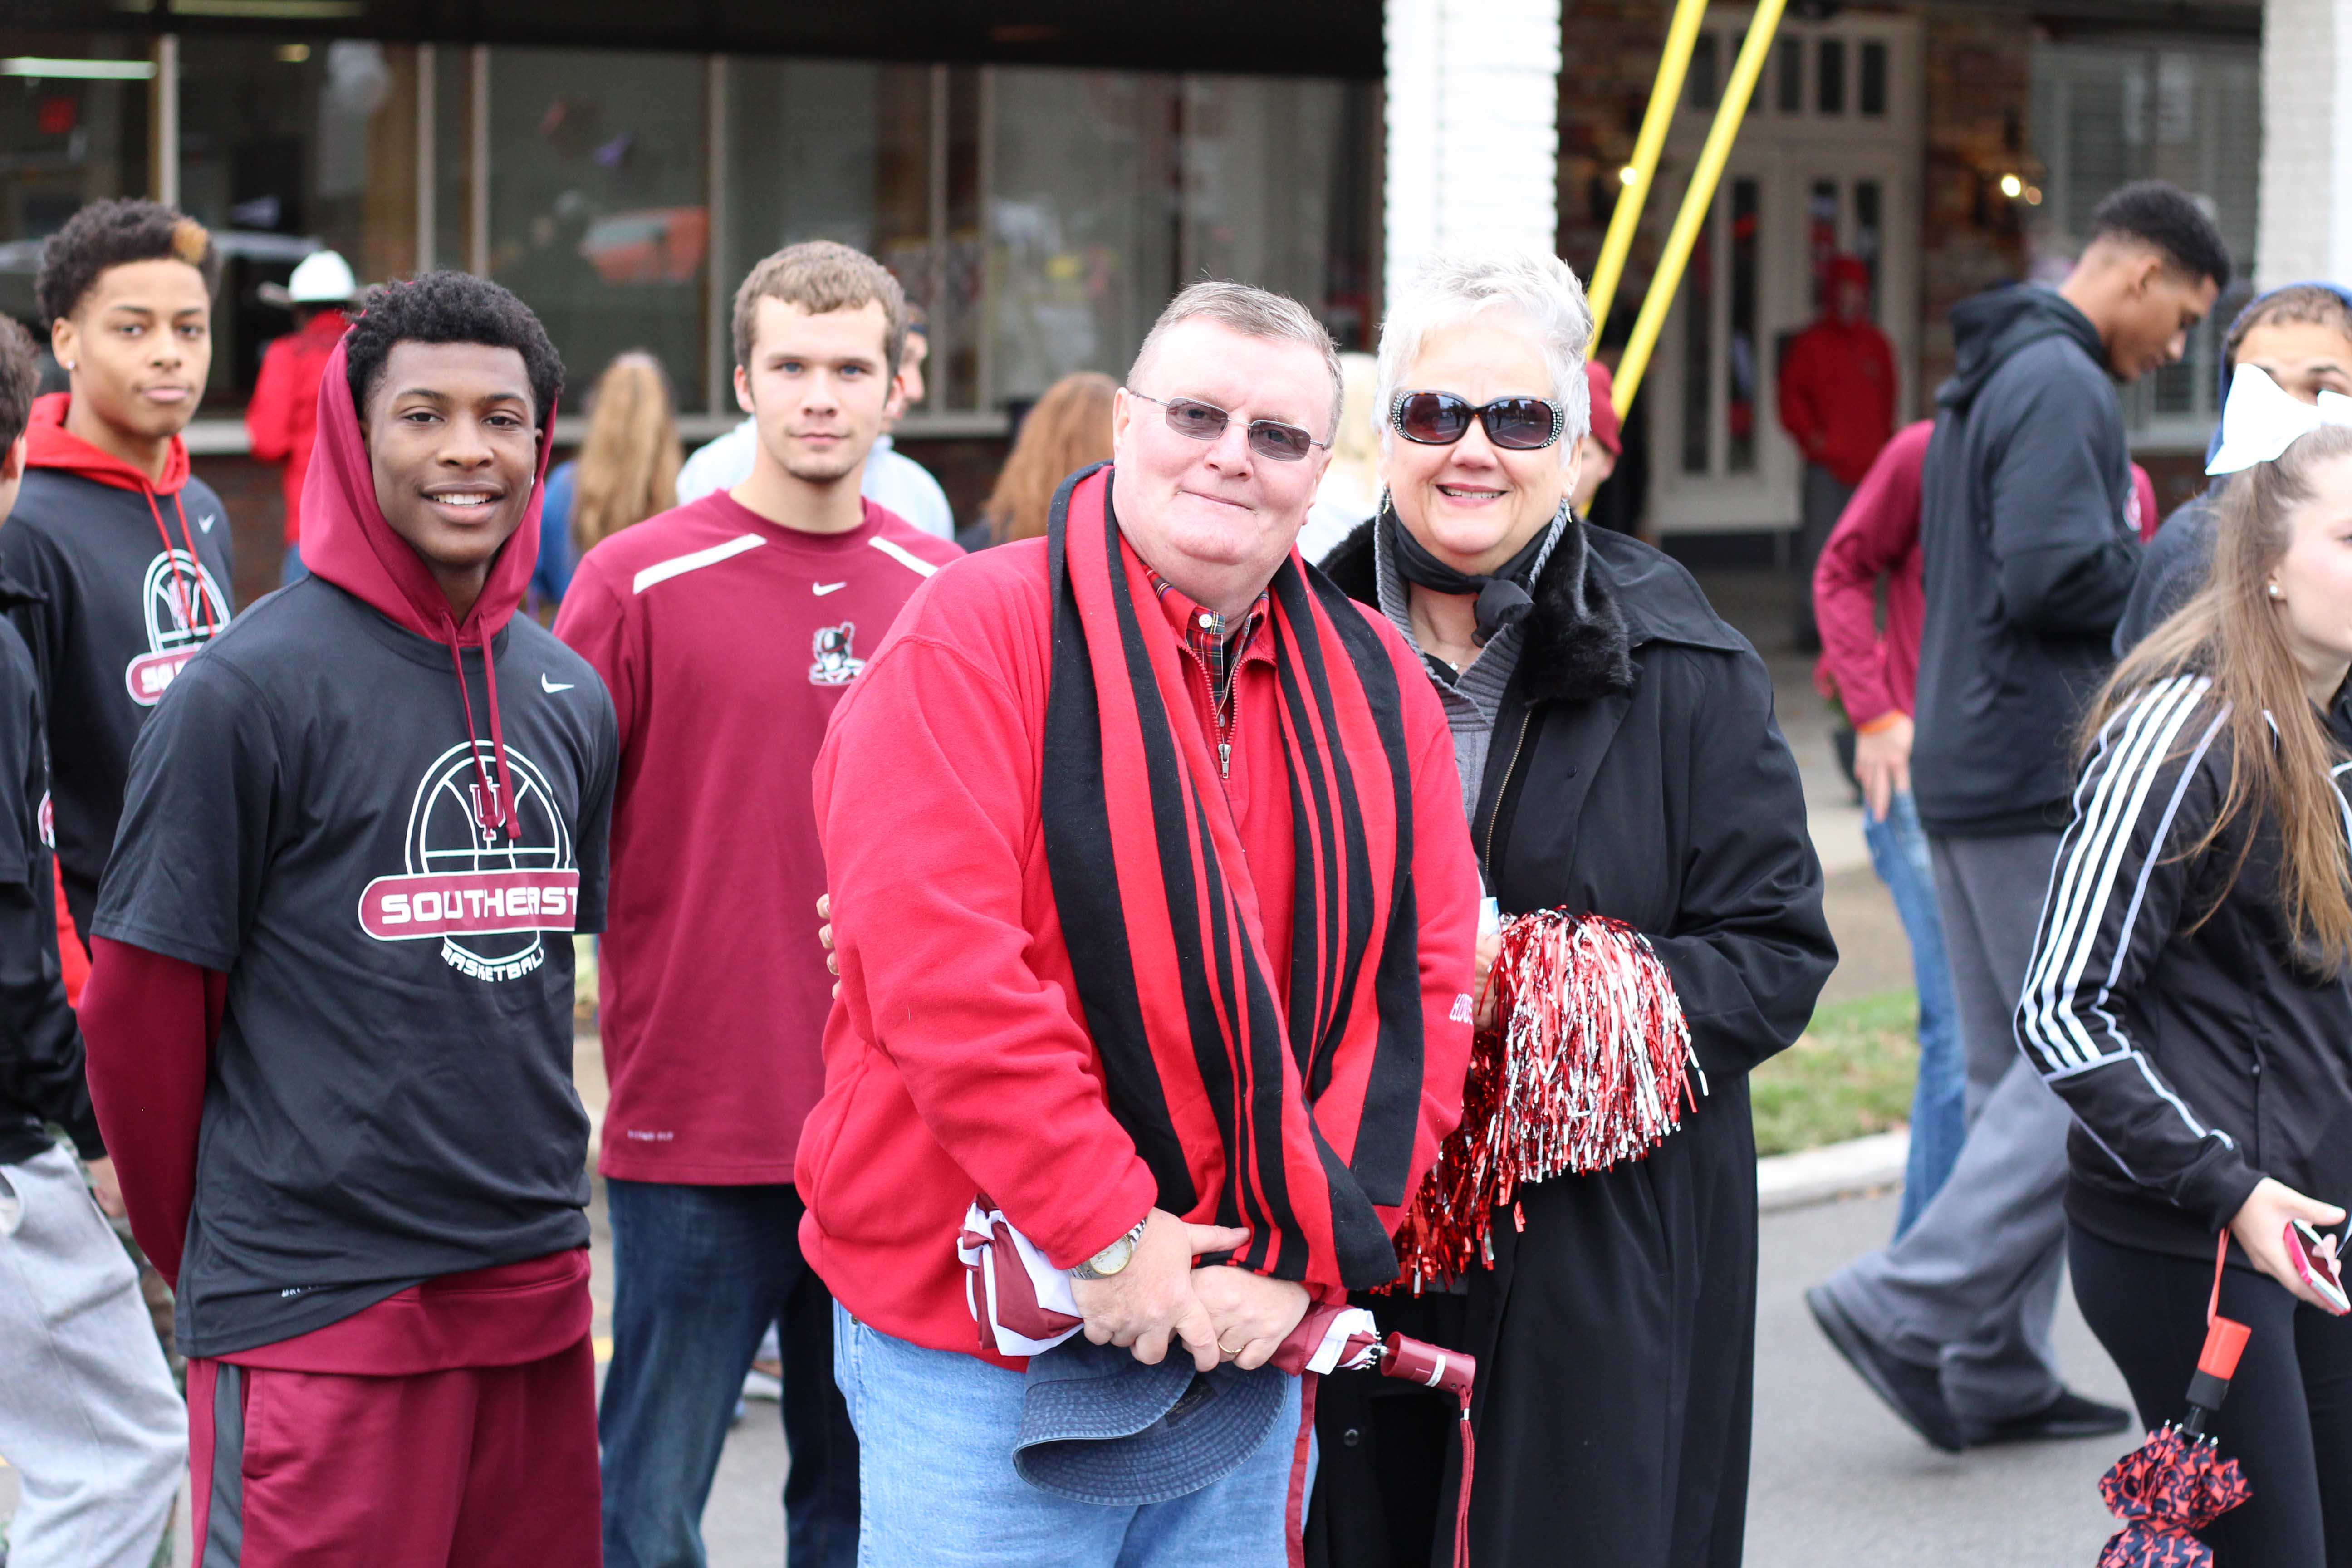 Chancellor+Wallace+and+his+wife+pose+with+IU+Southeast+sophomore+point+guard+Dee+Stanton.+%E2%80%9CThis+is+my+first+time+in+this+parade%2C%E2%80%9D+Stanton+said%2C+%E2%80%9Cother+than+freezing+throughout+the+whole+thing%2C+it+was+fun+to+walk+with+my+teammates.%E2%80%9D%0A